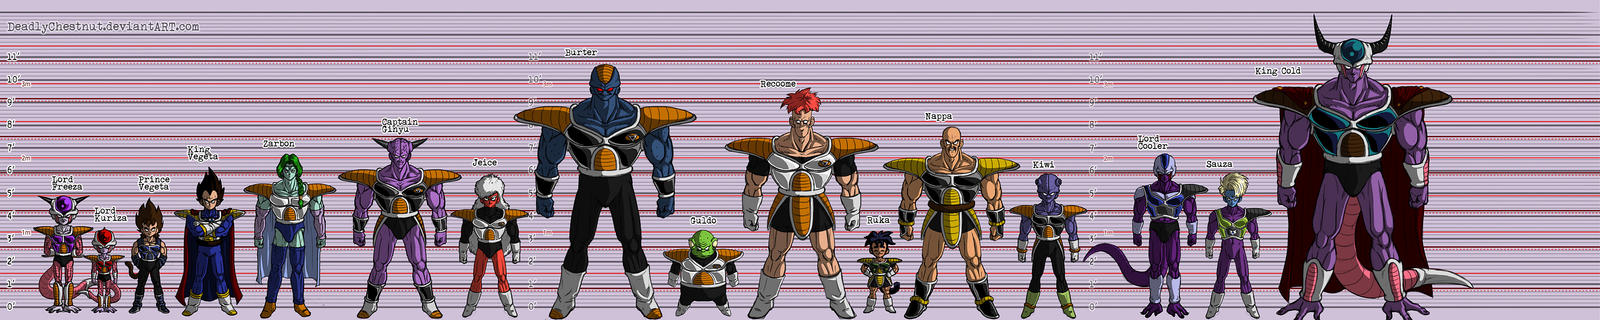 https://img00.deviantart.net/a496/i/2010/195/3/0/dbz_height_chart_v_1_2_by_deadlychestnut.jpg